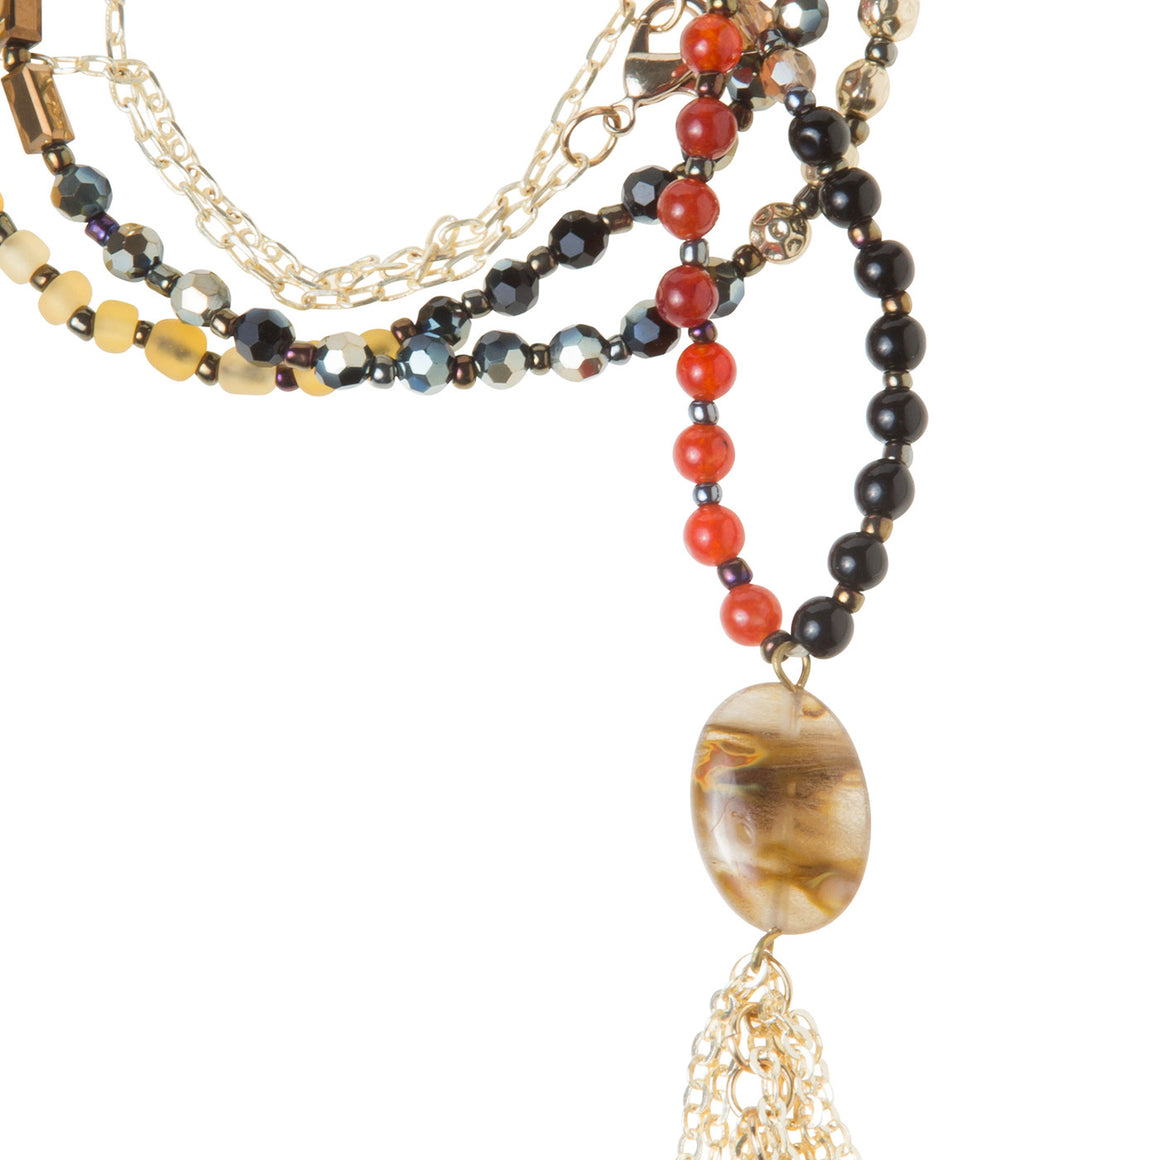 Daily Mala Necklace : currant/gold